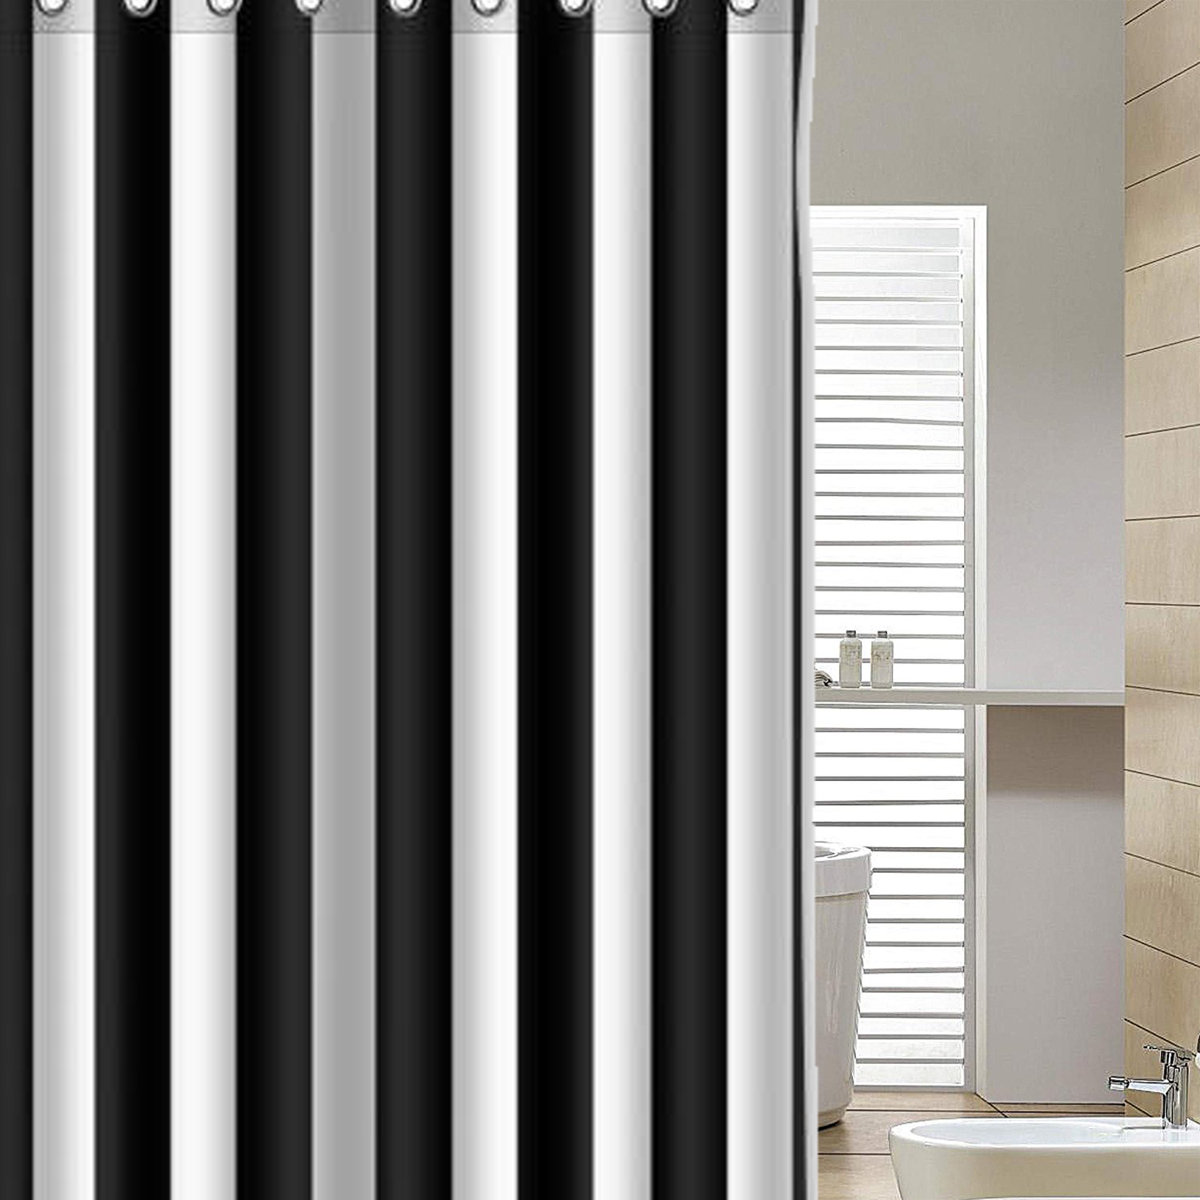 Designer Duschvorhang Black And White Vertical Stripes Waterproof Bathroom Shower Curtain With 12 Hooks